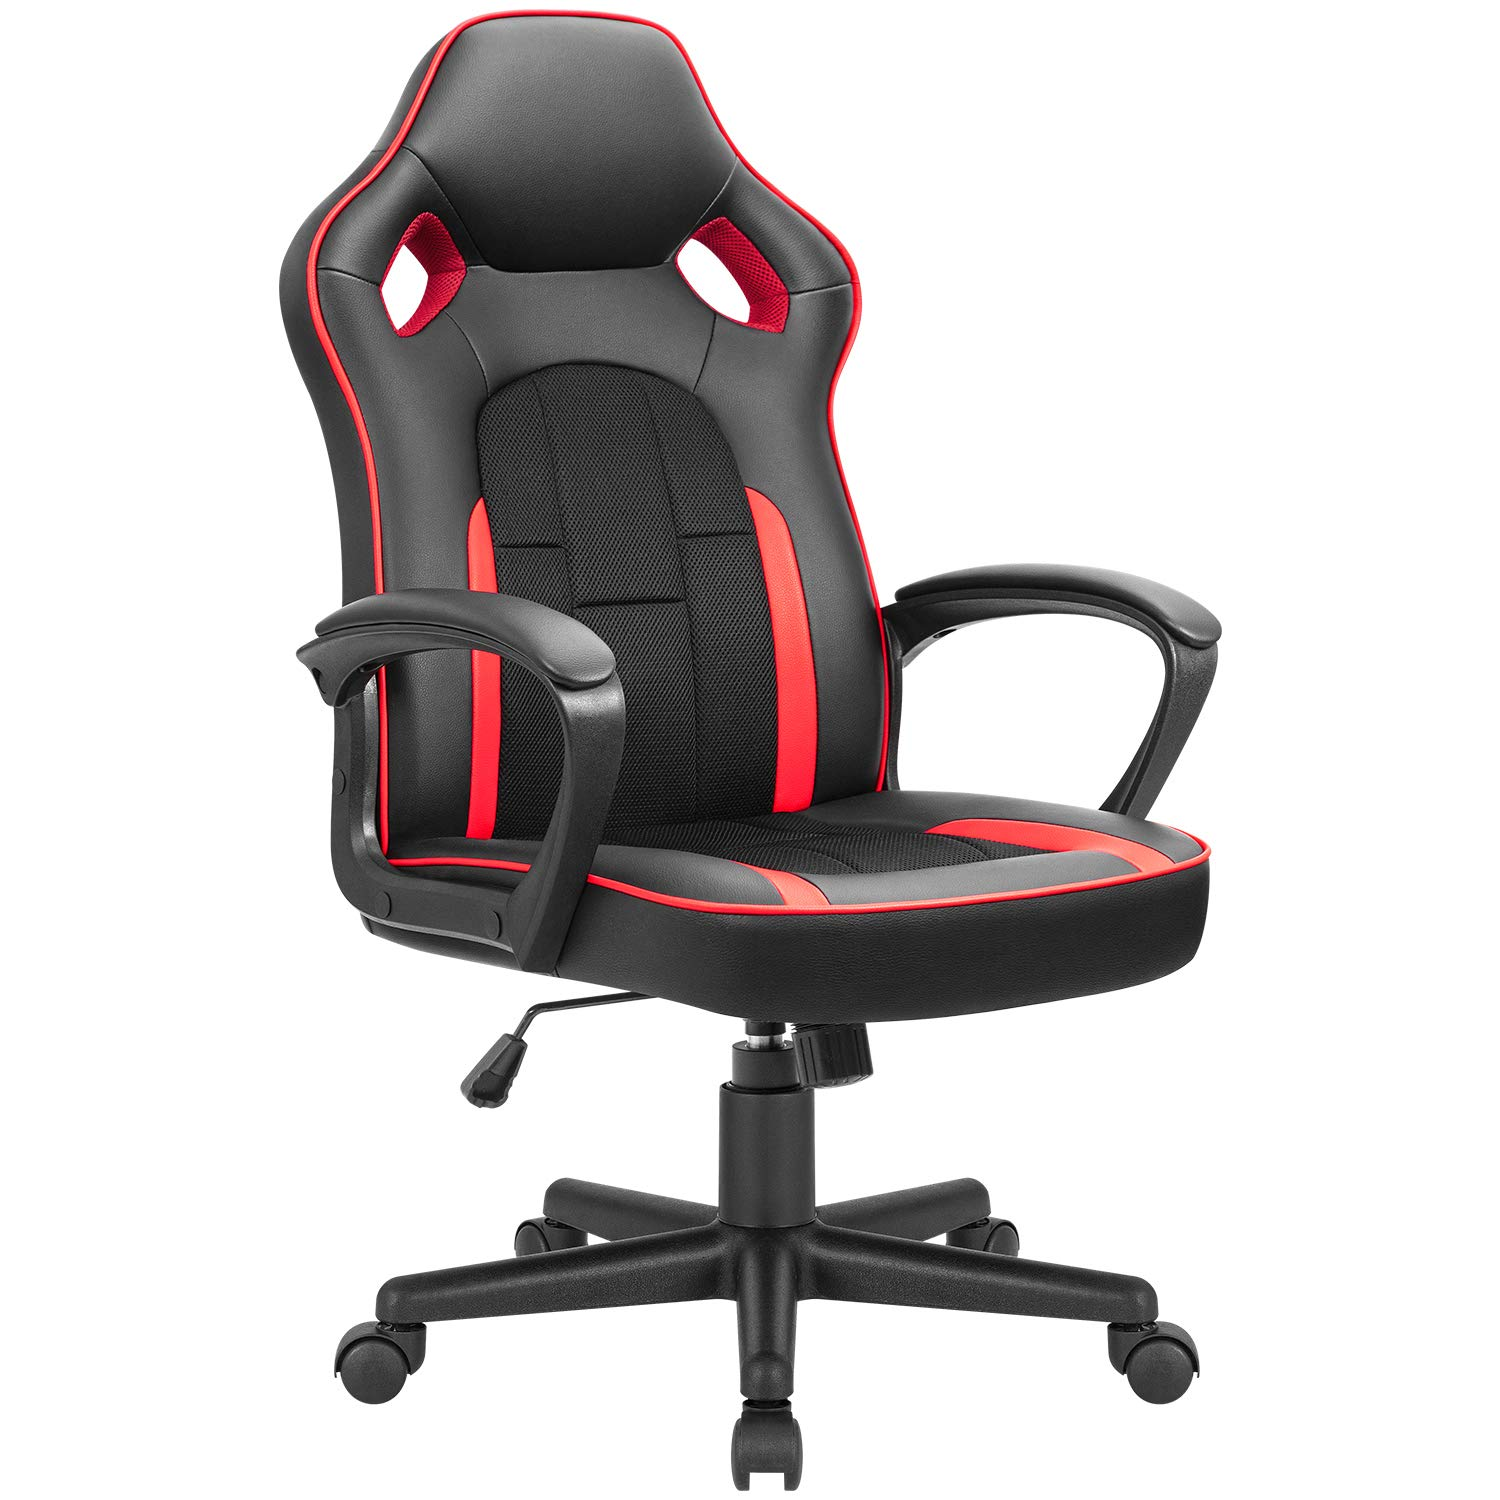 JUMMICO Gaming Chair Ergonomic Executive Office Desk Chair High Back Leather Swivel Computer Racing Chair with Lumbar Support (Red)